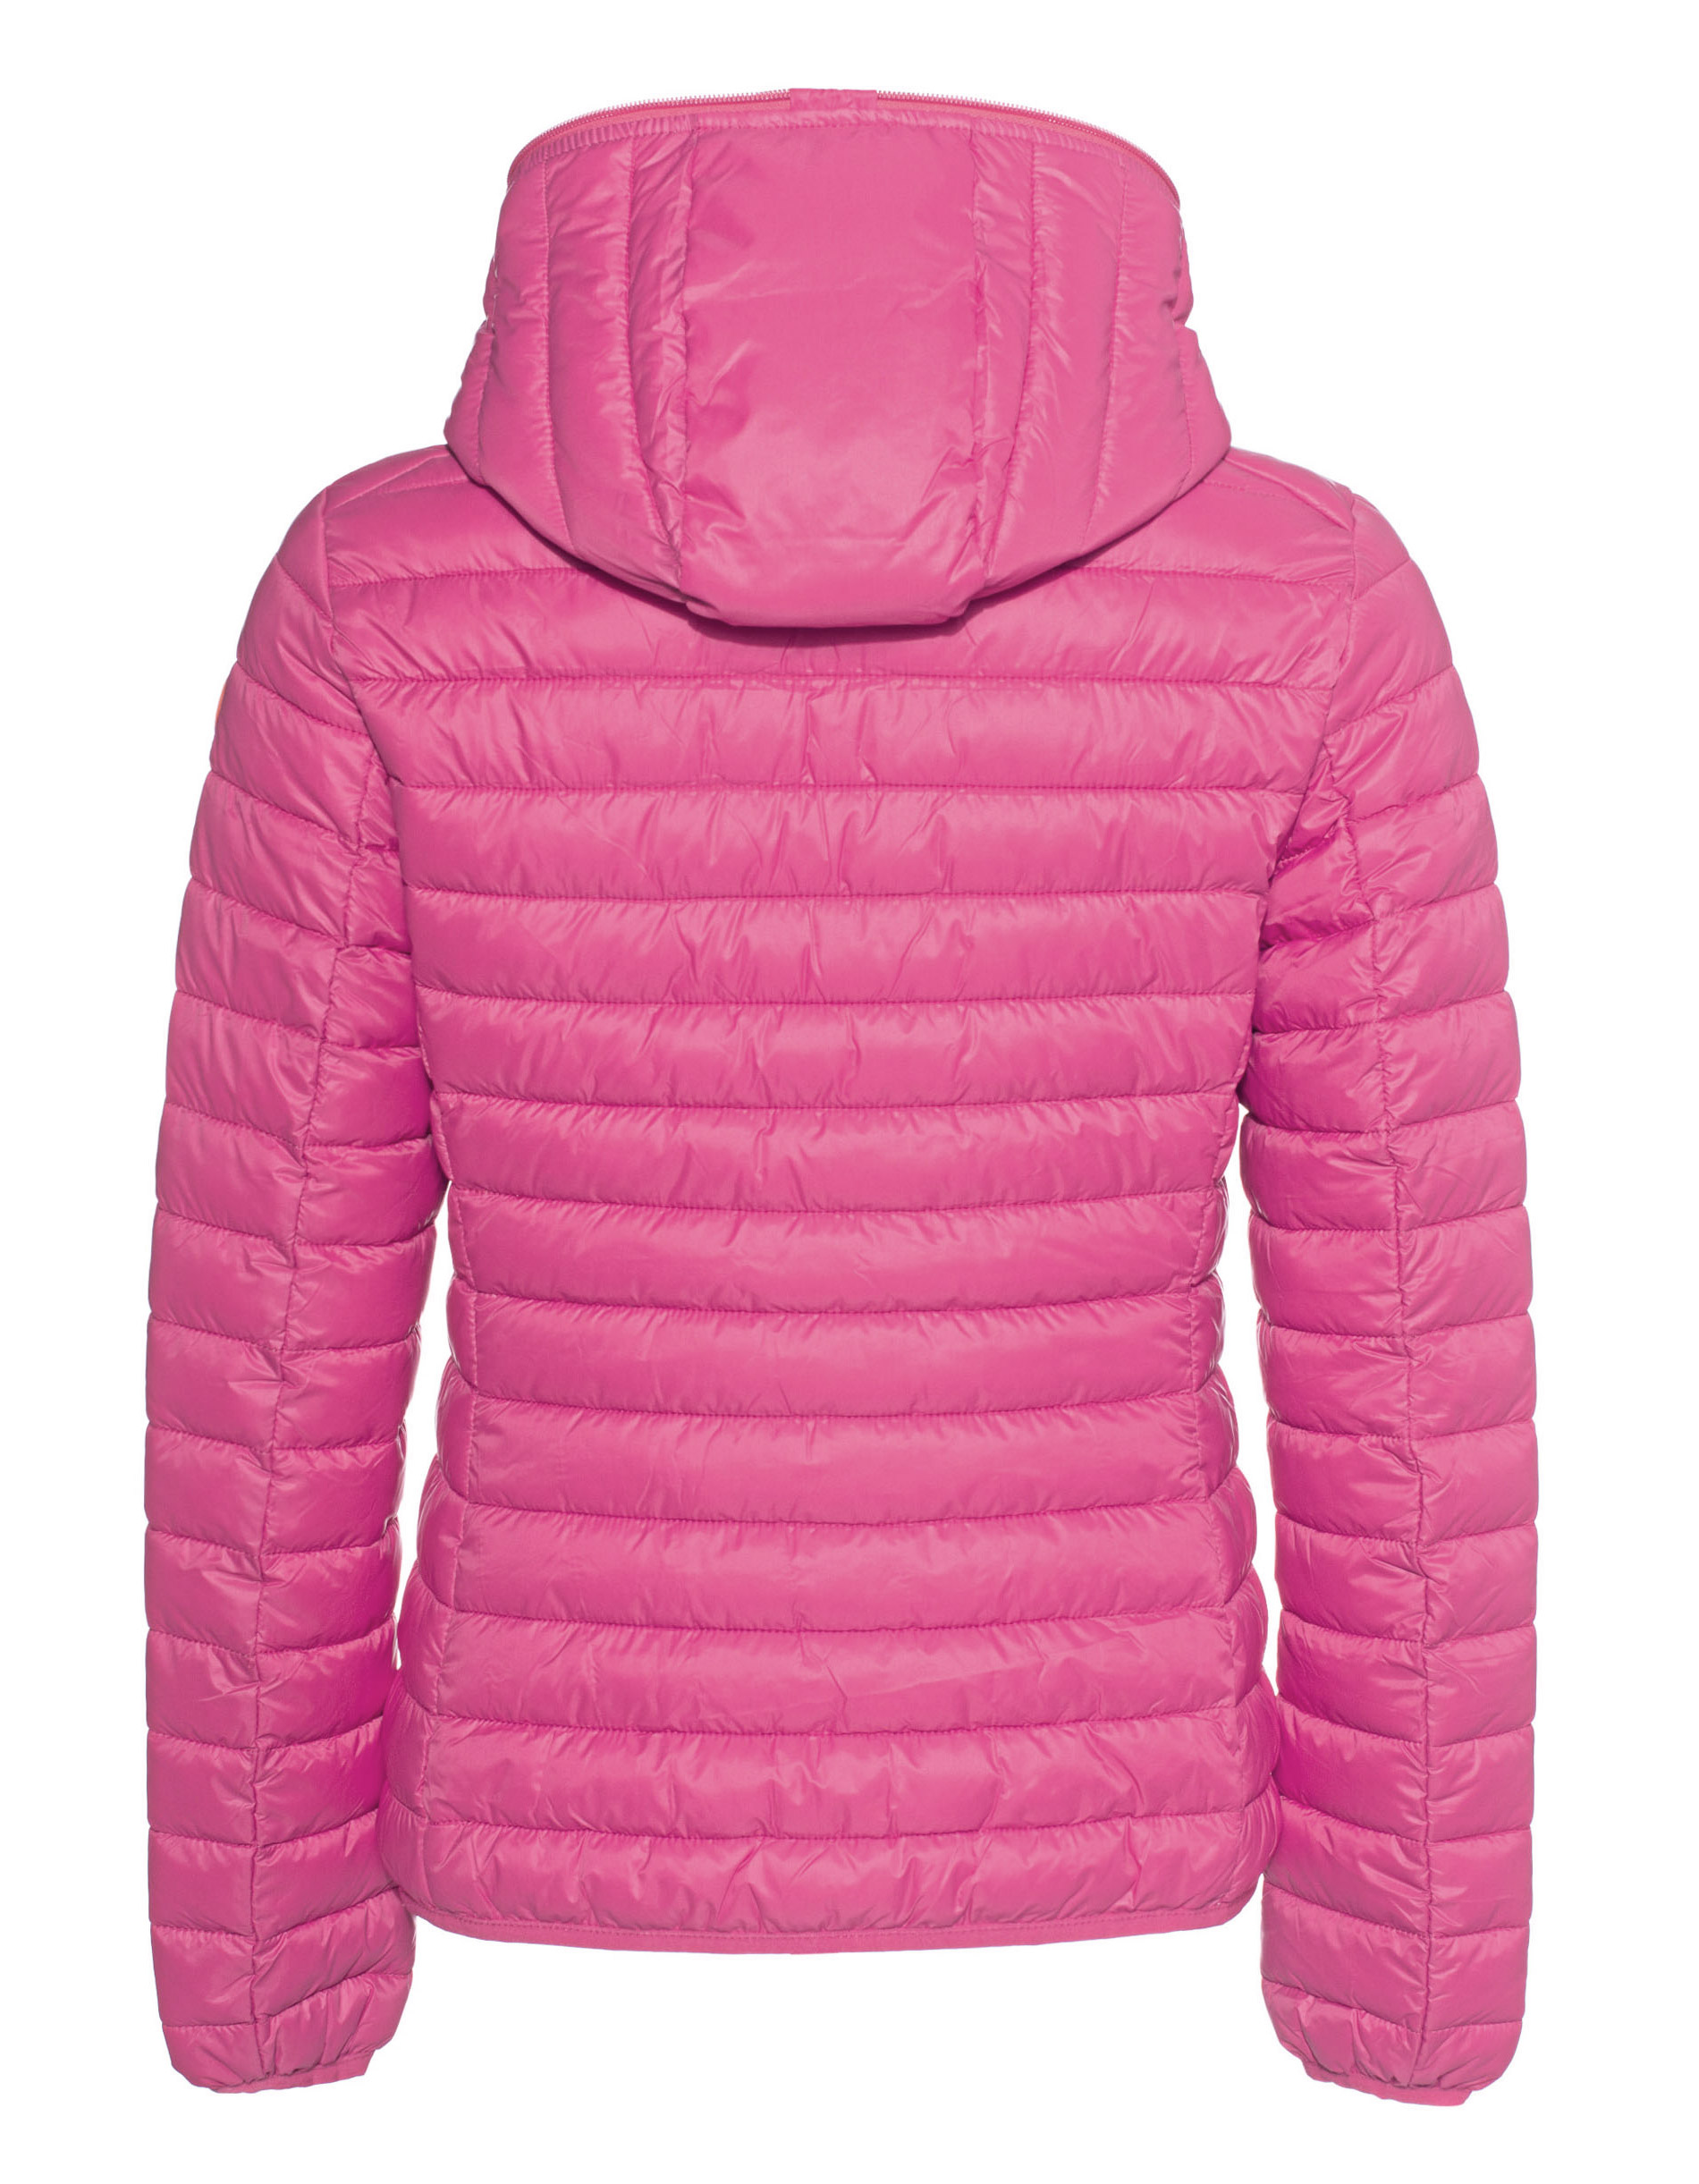 Save The Duck Wattierte Jacke mit Kapuze pink